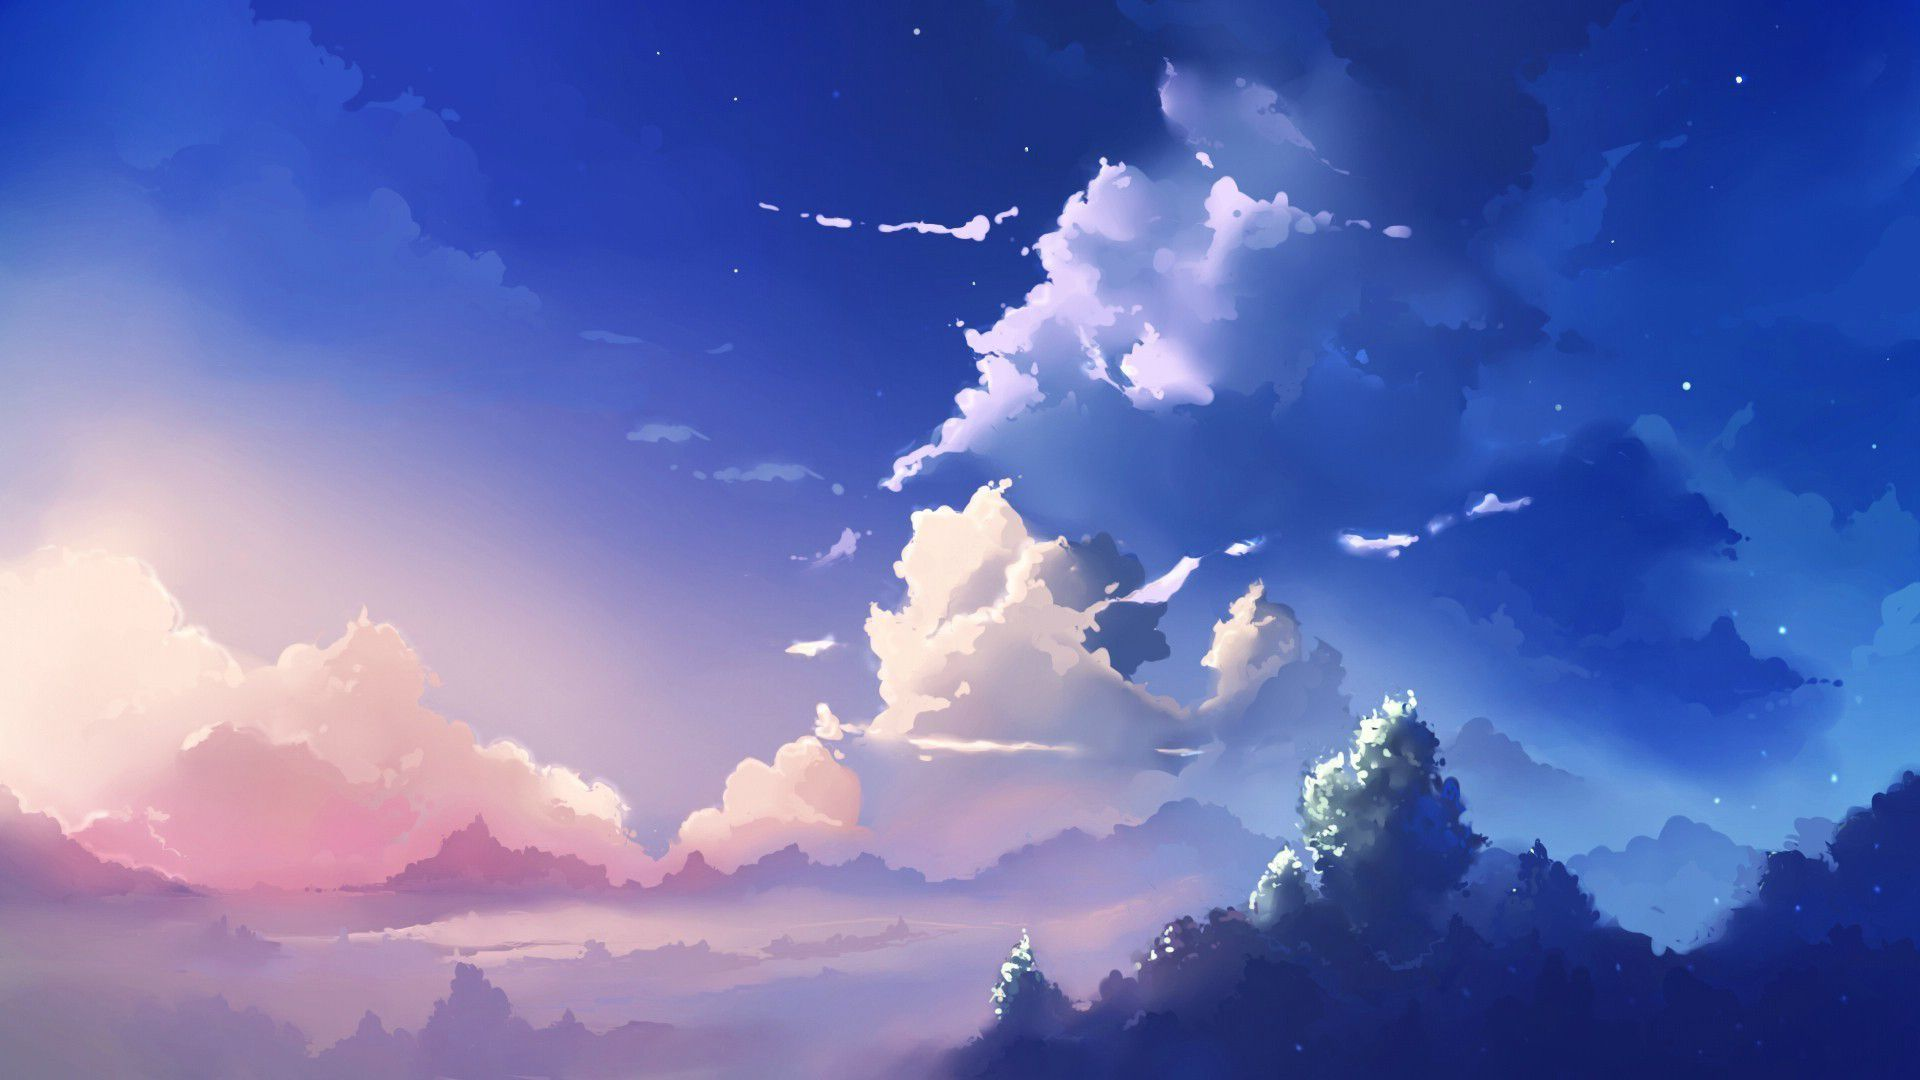 General 1920x1080 Sky Clouds Scenery Wallpaper Anime Backgrounds Wallpapers Anime Scenery